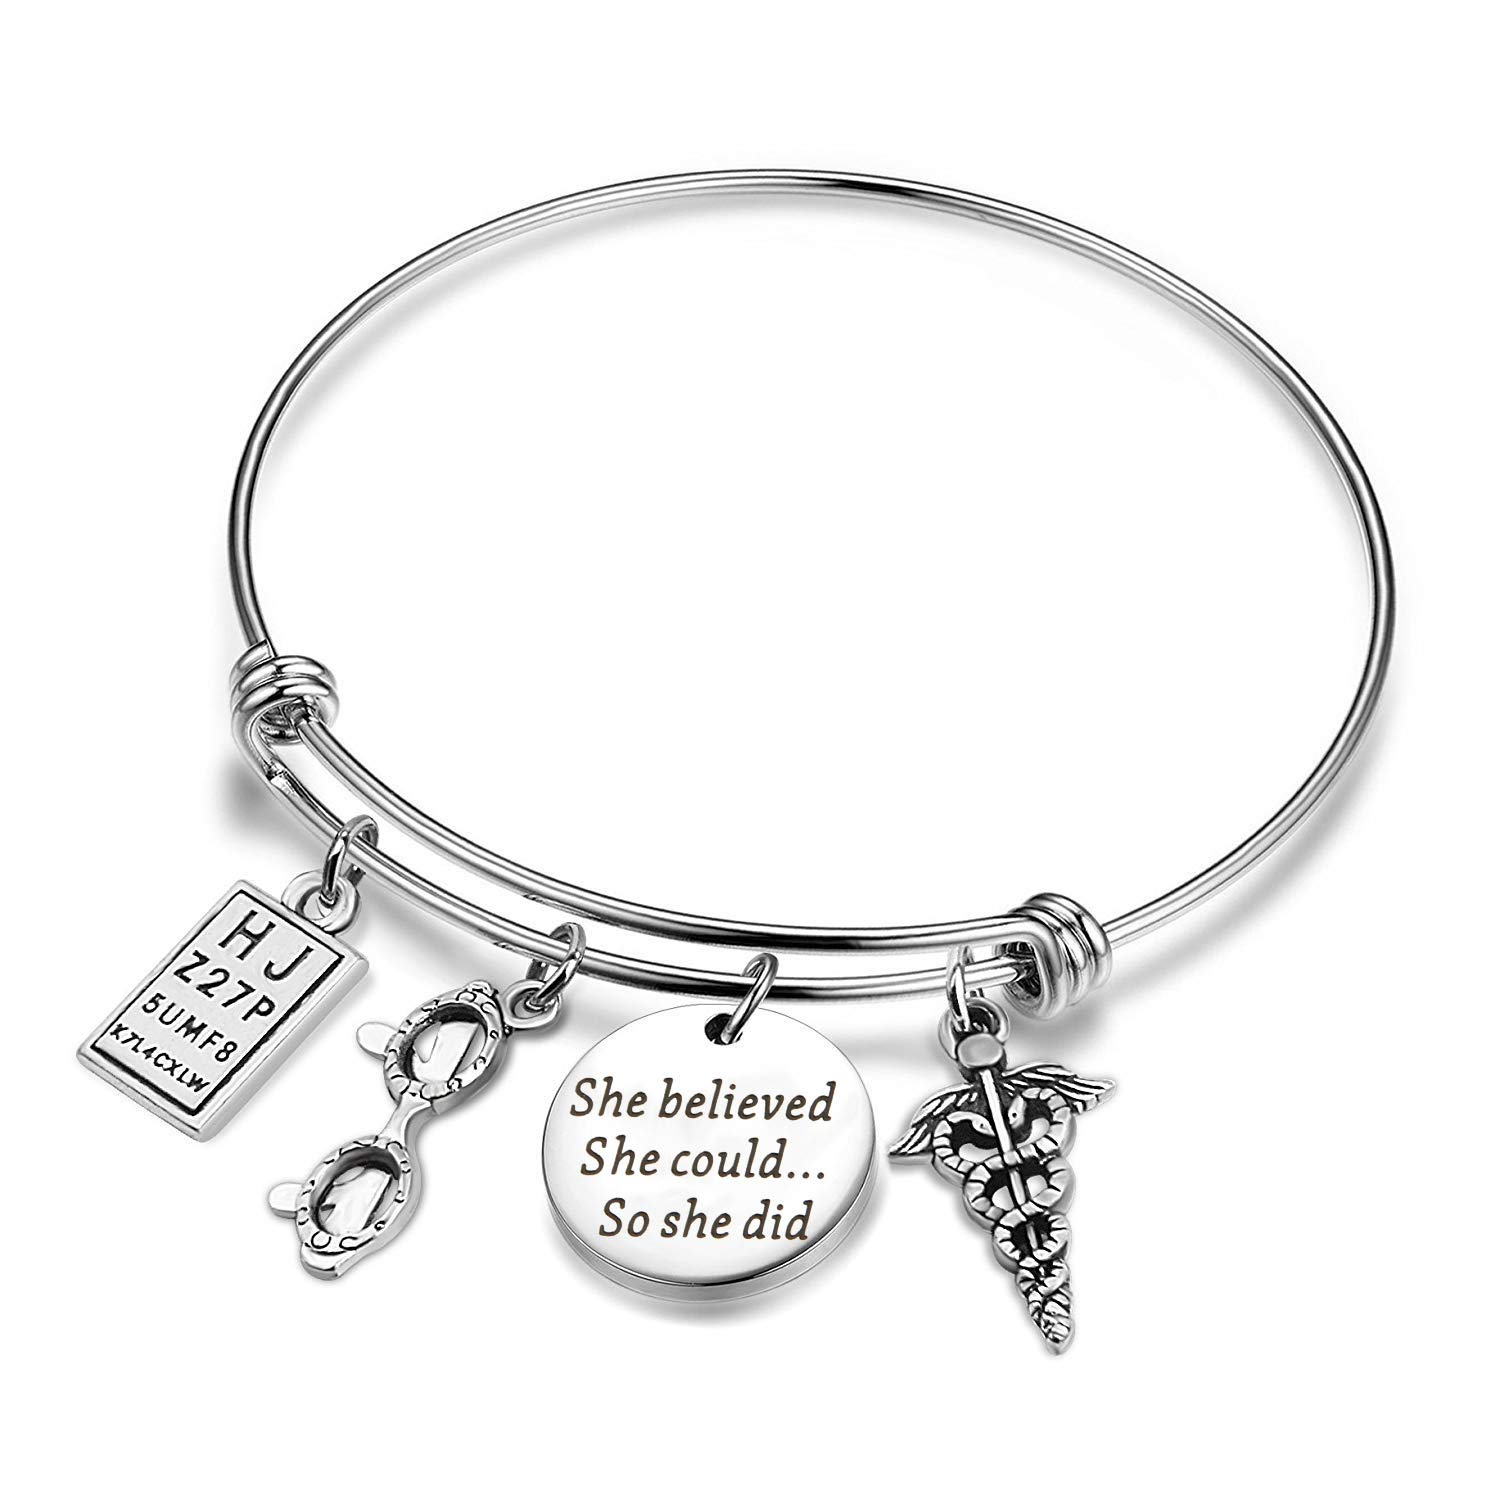 She Believed She Could So She Did Adjustable Bangle Optometrist Gifts Graduation Birthday Gift for Eye Doctor Optometry Student